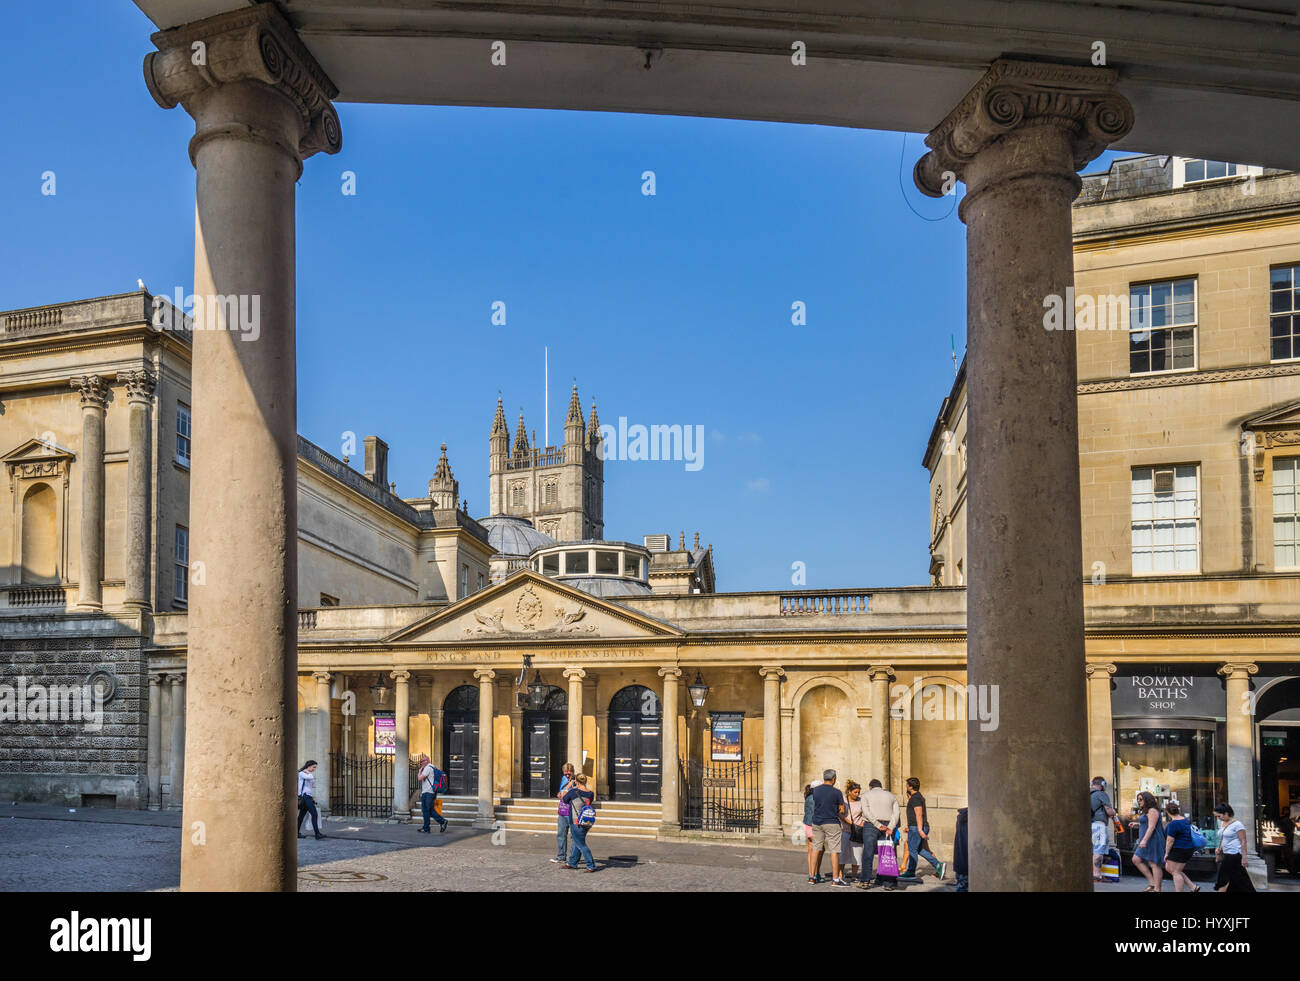 United Kingdom, Somerset, Bath, South Colonnade of the Grand Pump Room at the Roman Bath Stock Photo